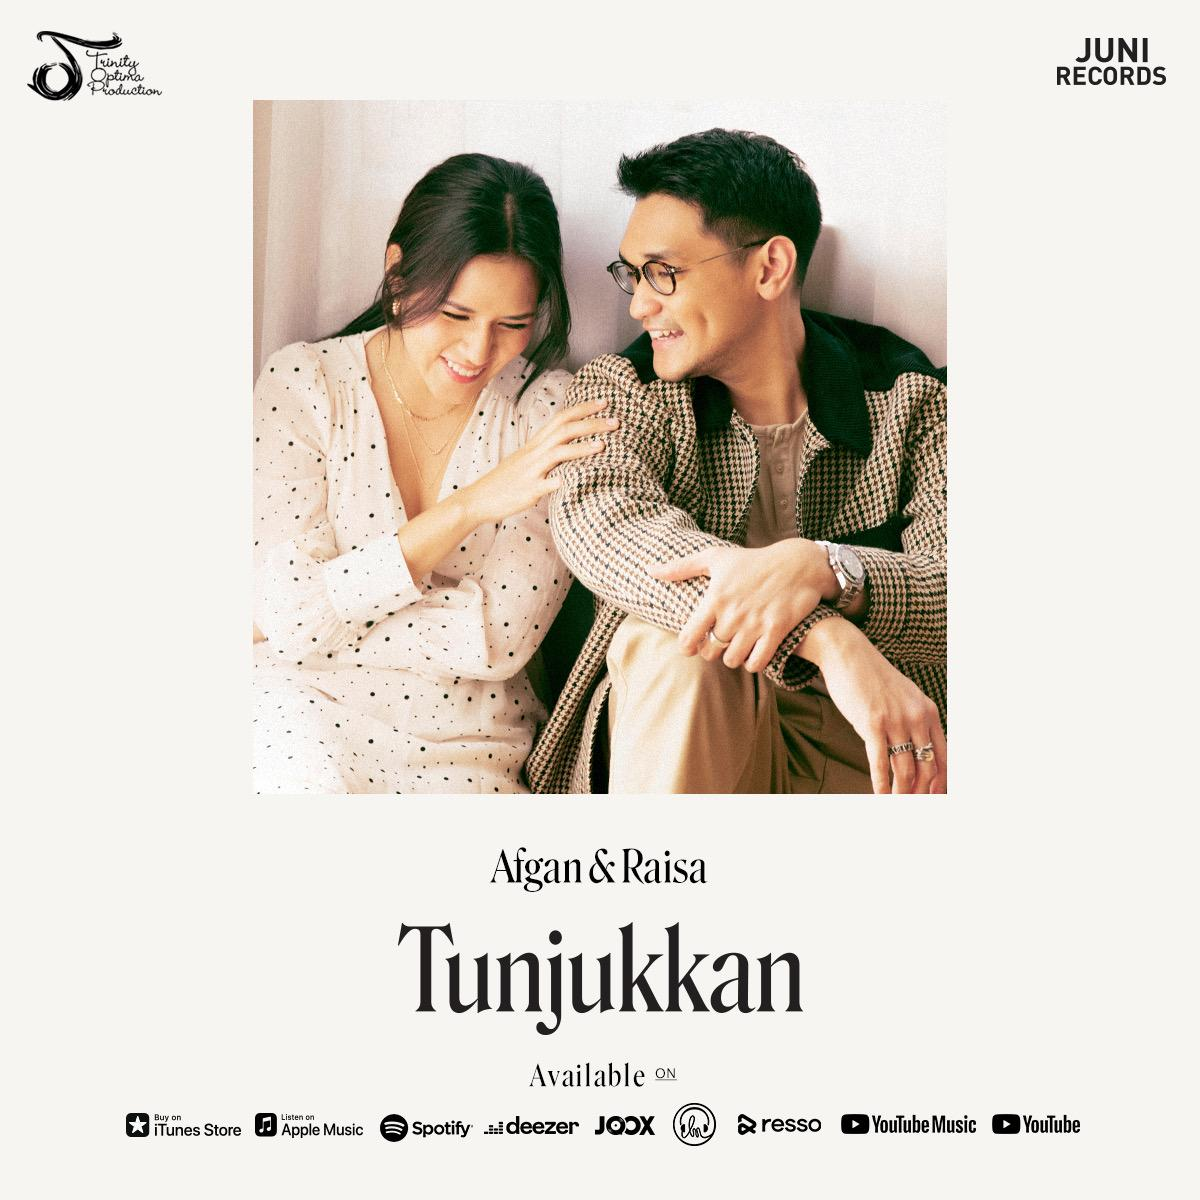 My newest single with @raisa6690 'Tunjukkan' is available now on all digital streaming platforms. Go listen now and let me know what do you think.   #afganraisatunjukkan